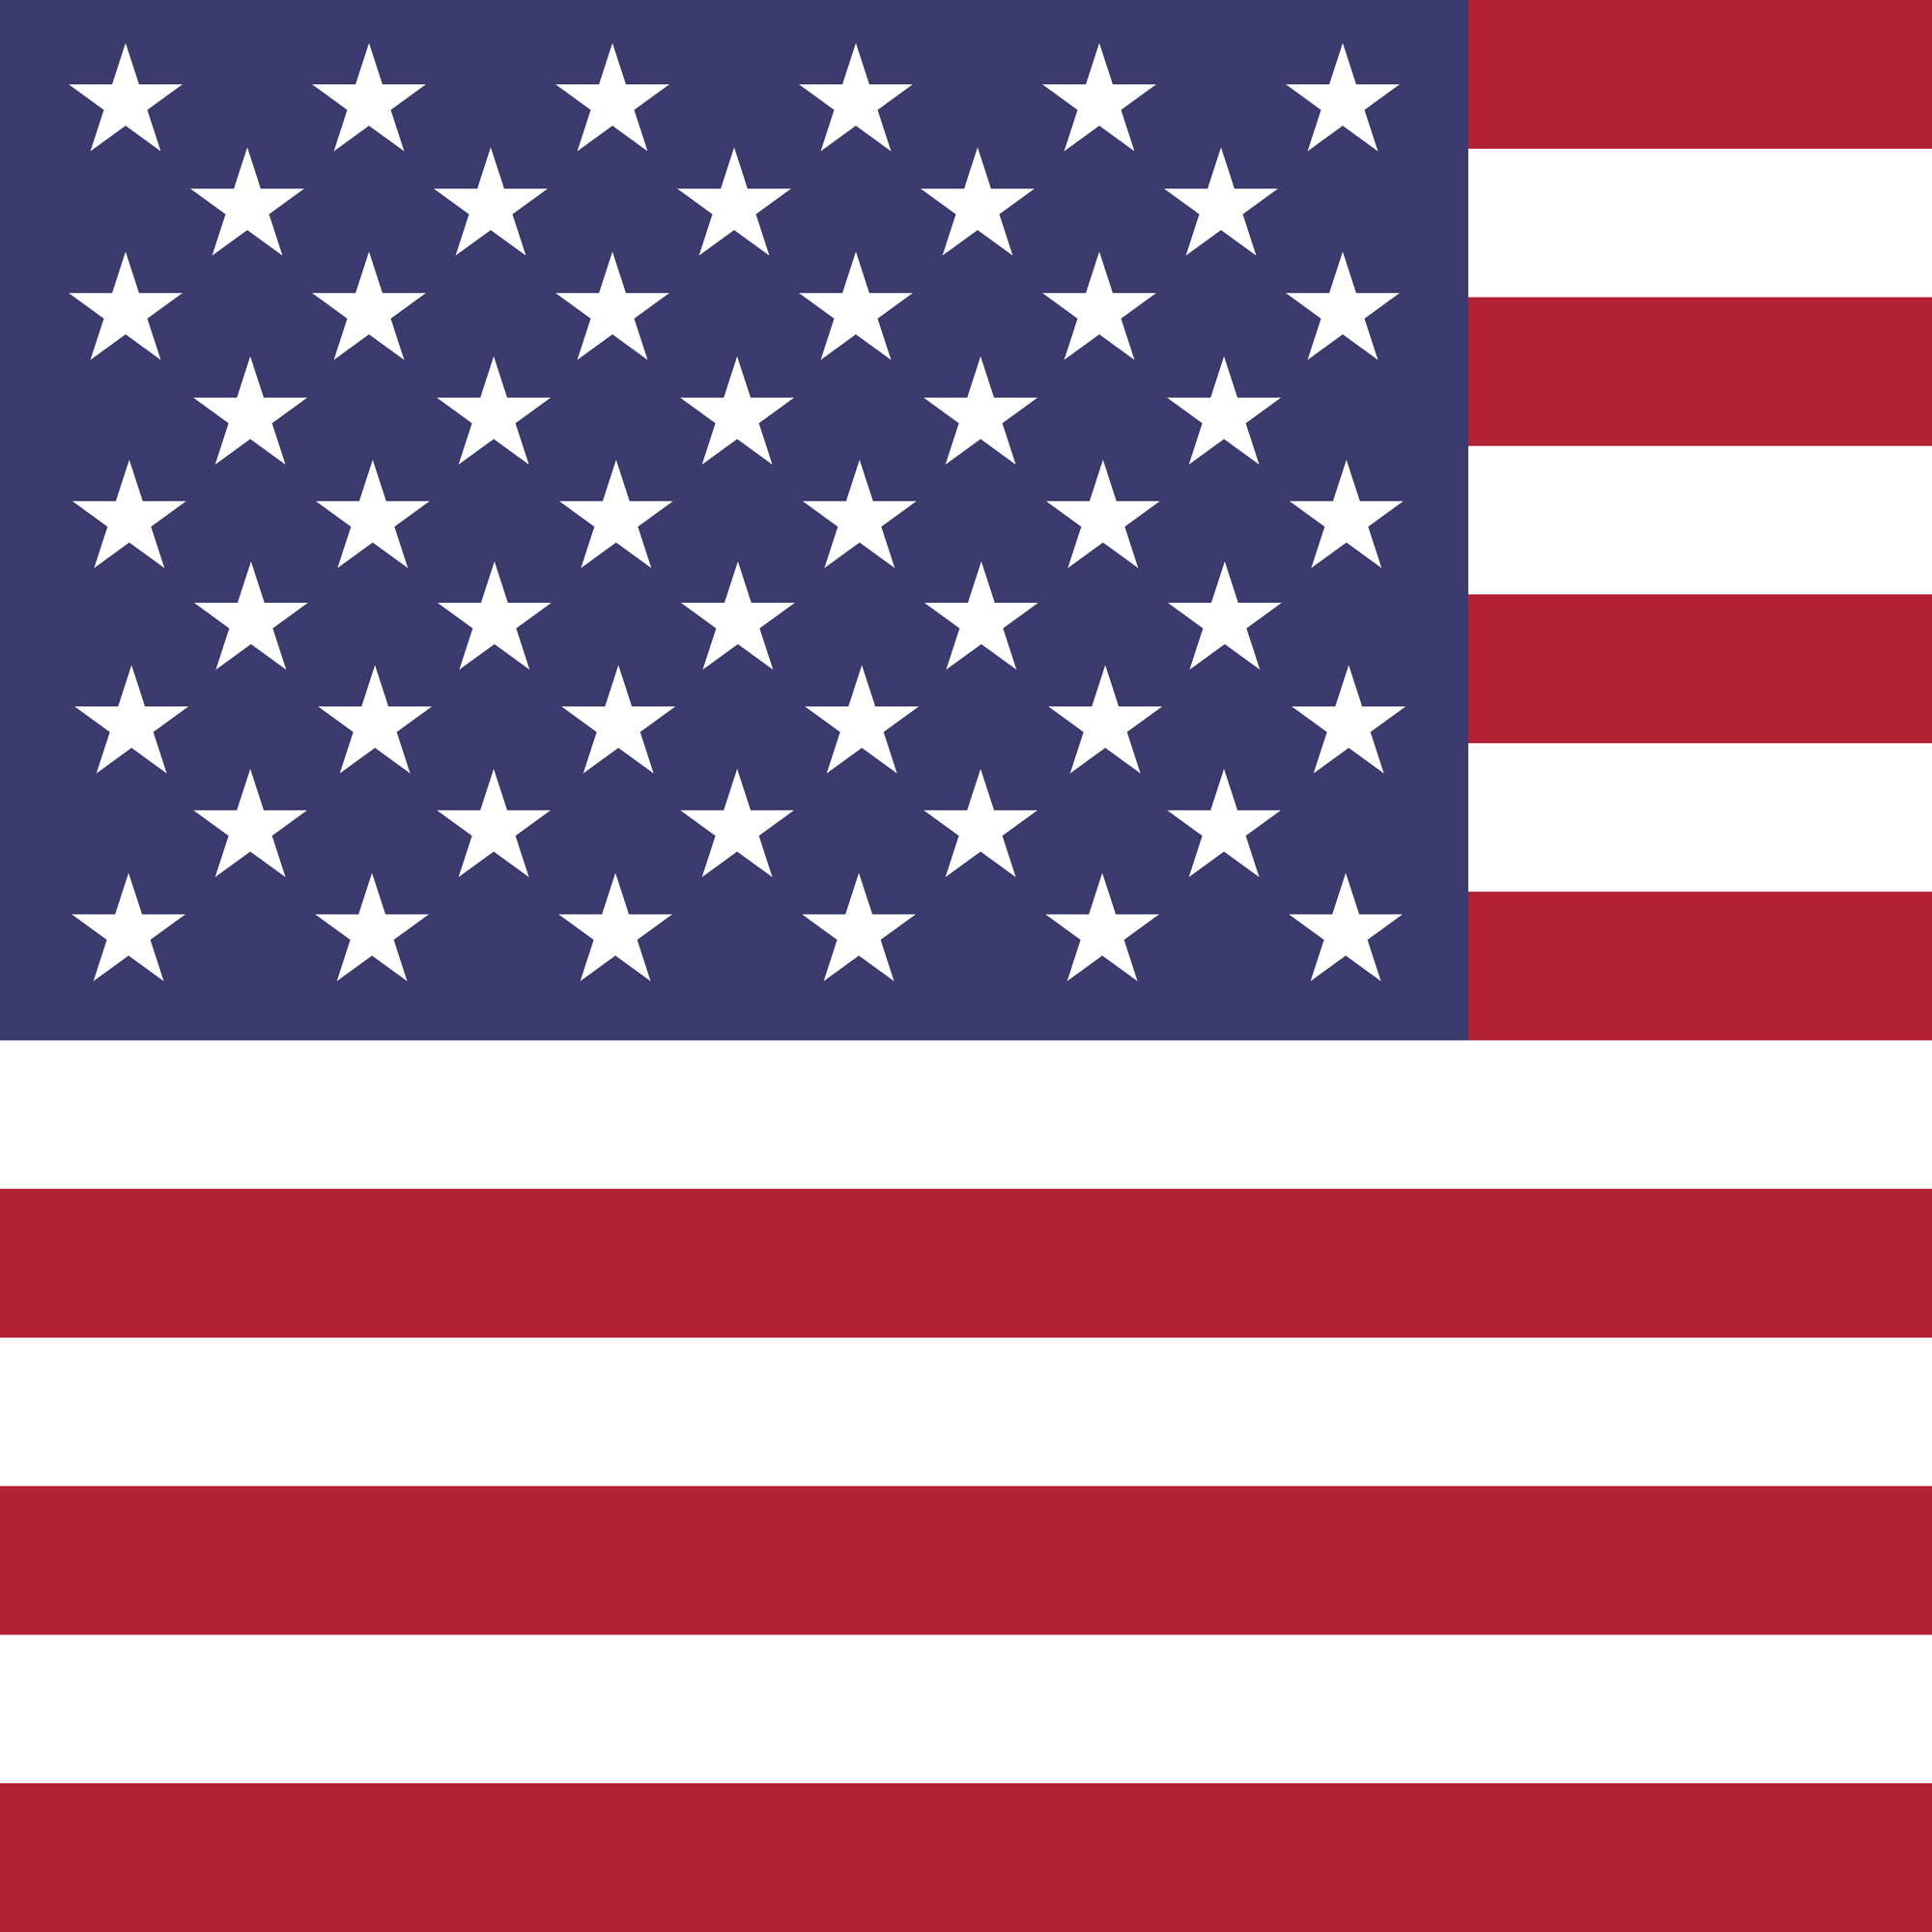 U.S.A. flag in square format